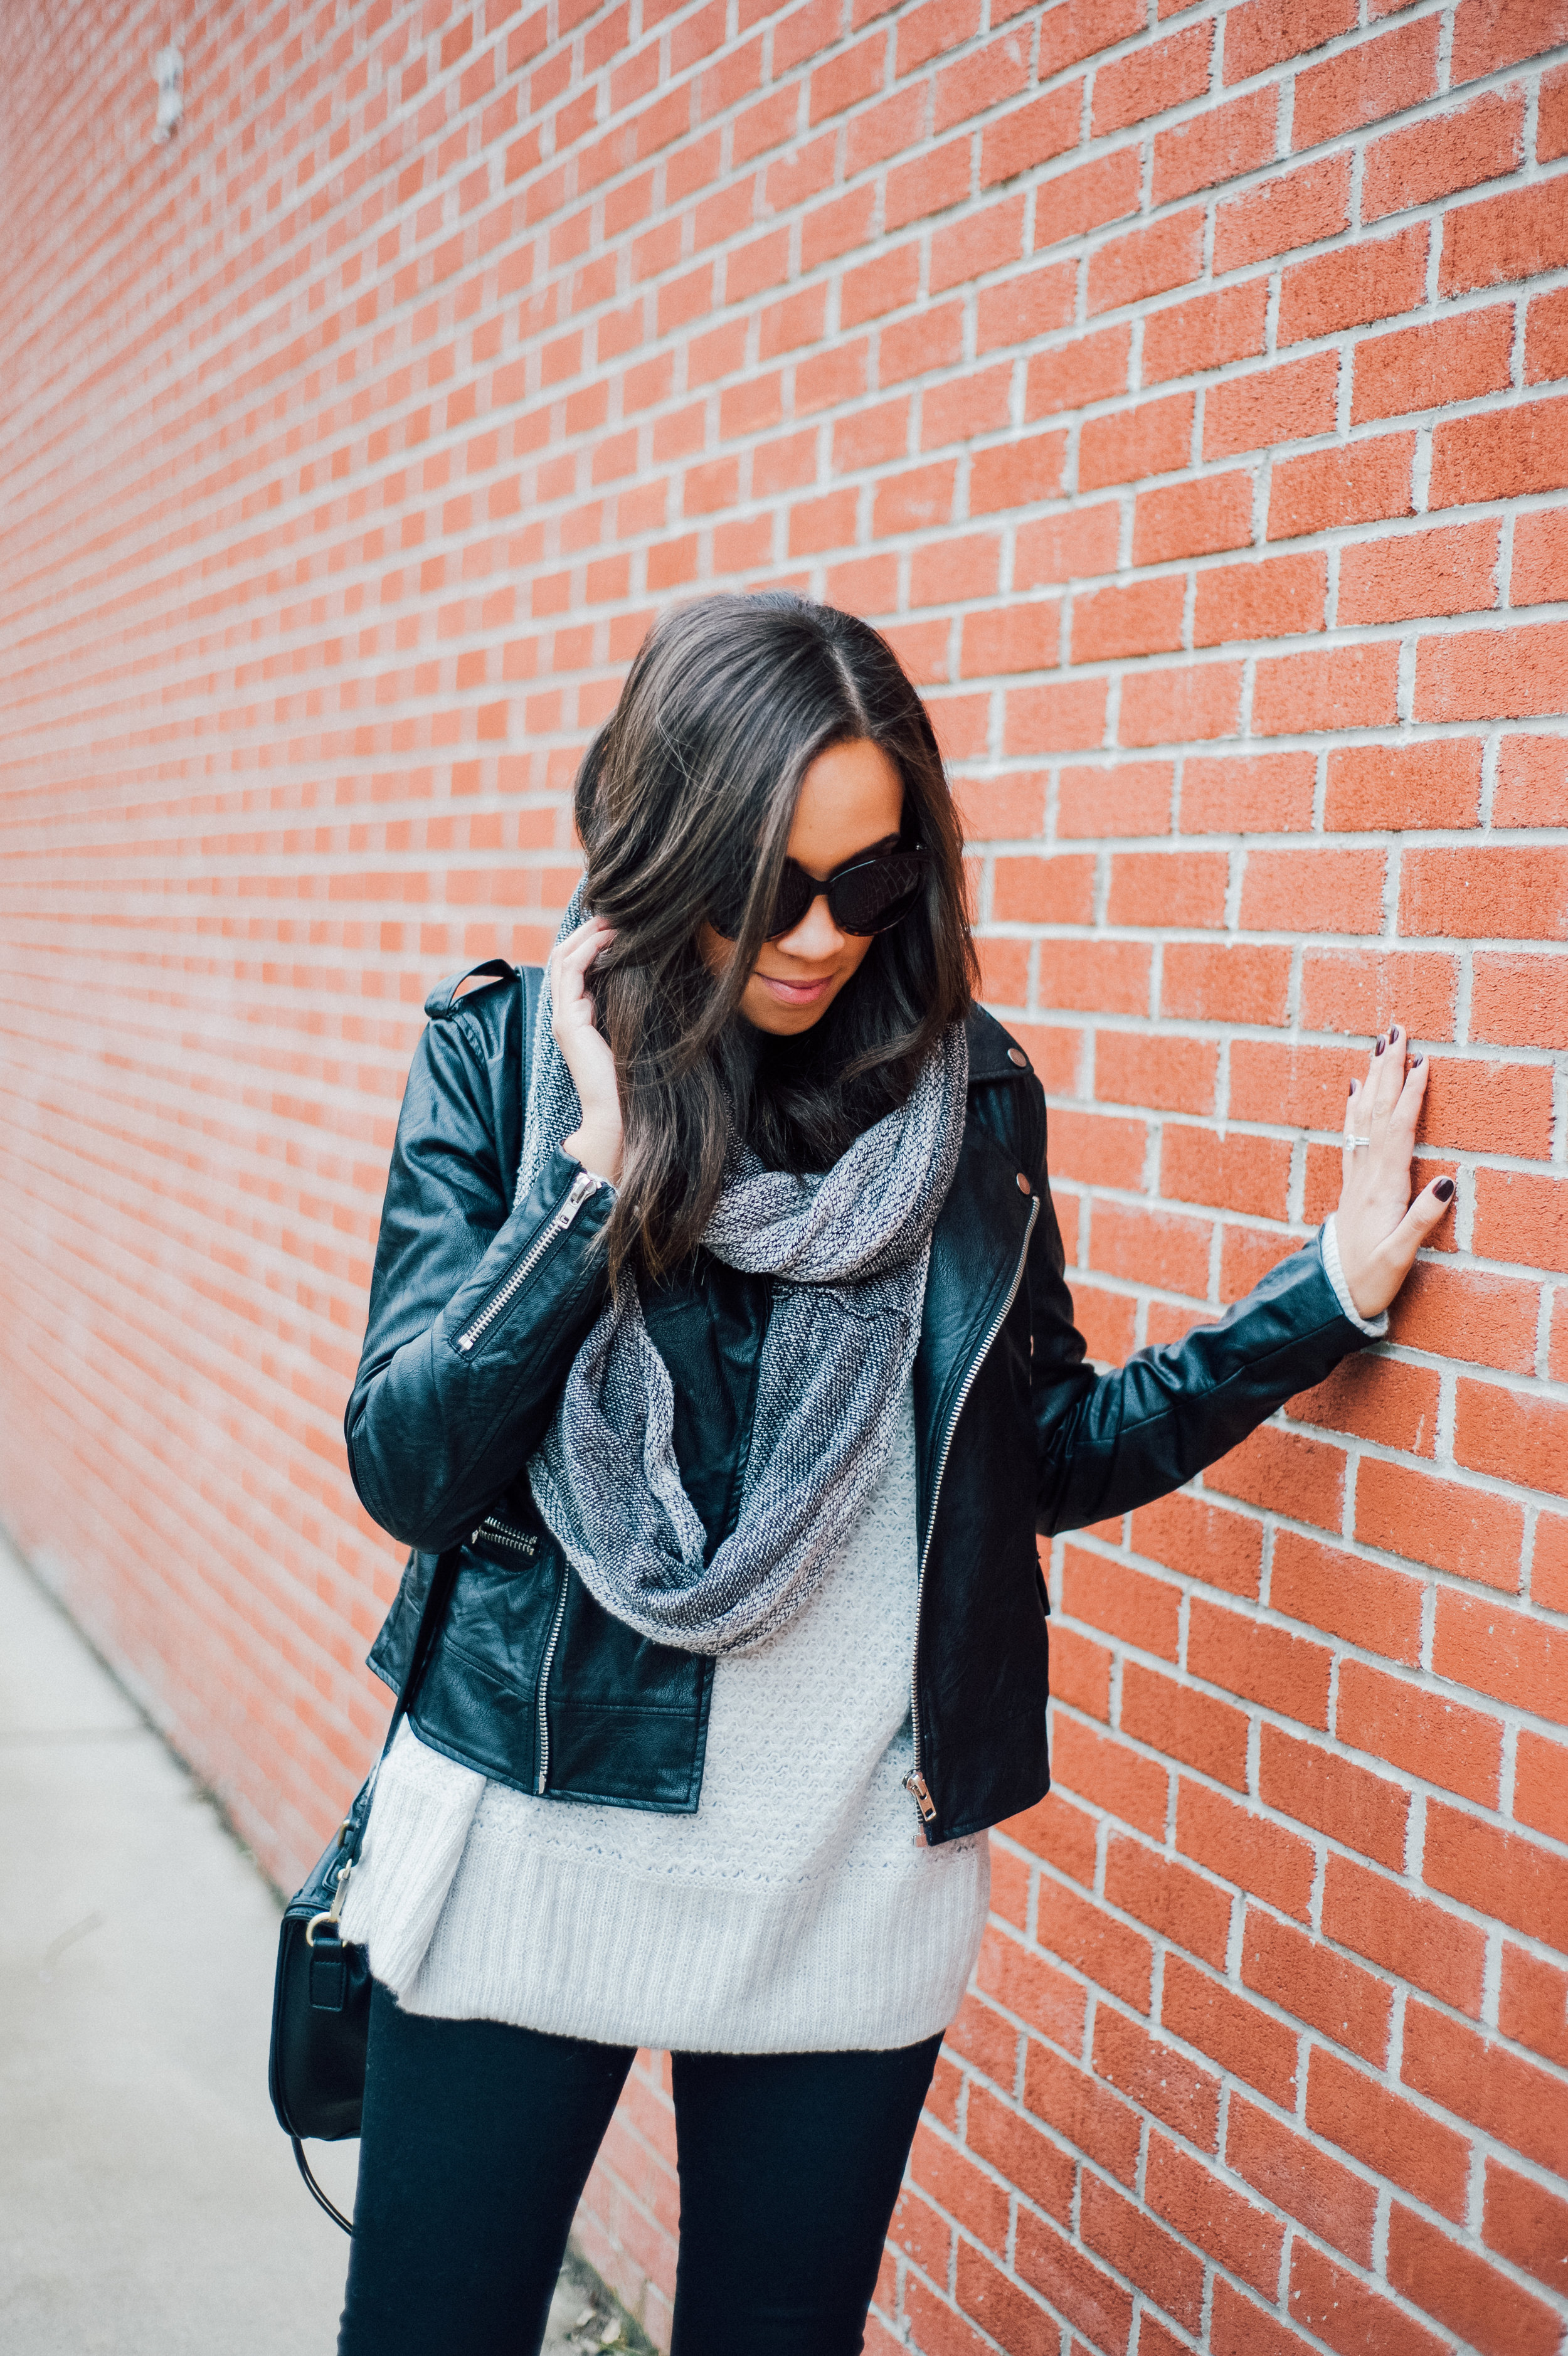 Black Faux Leather Jacket + Grey Infinity Scarf 18.jpg